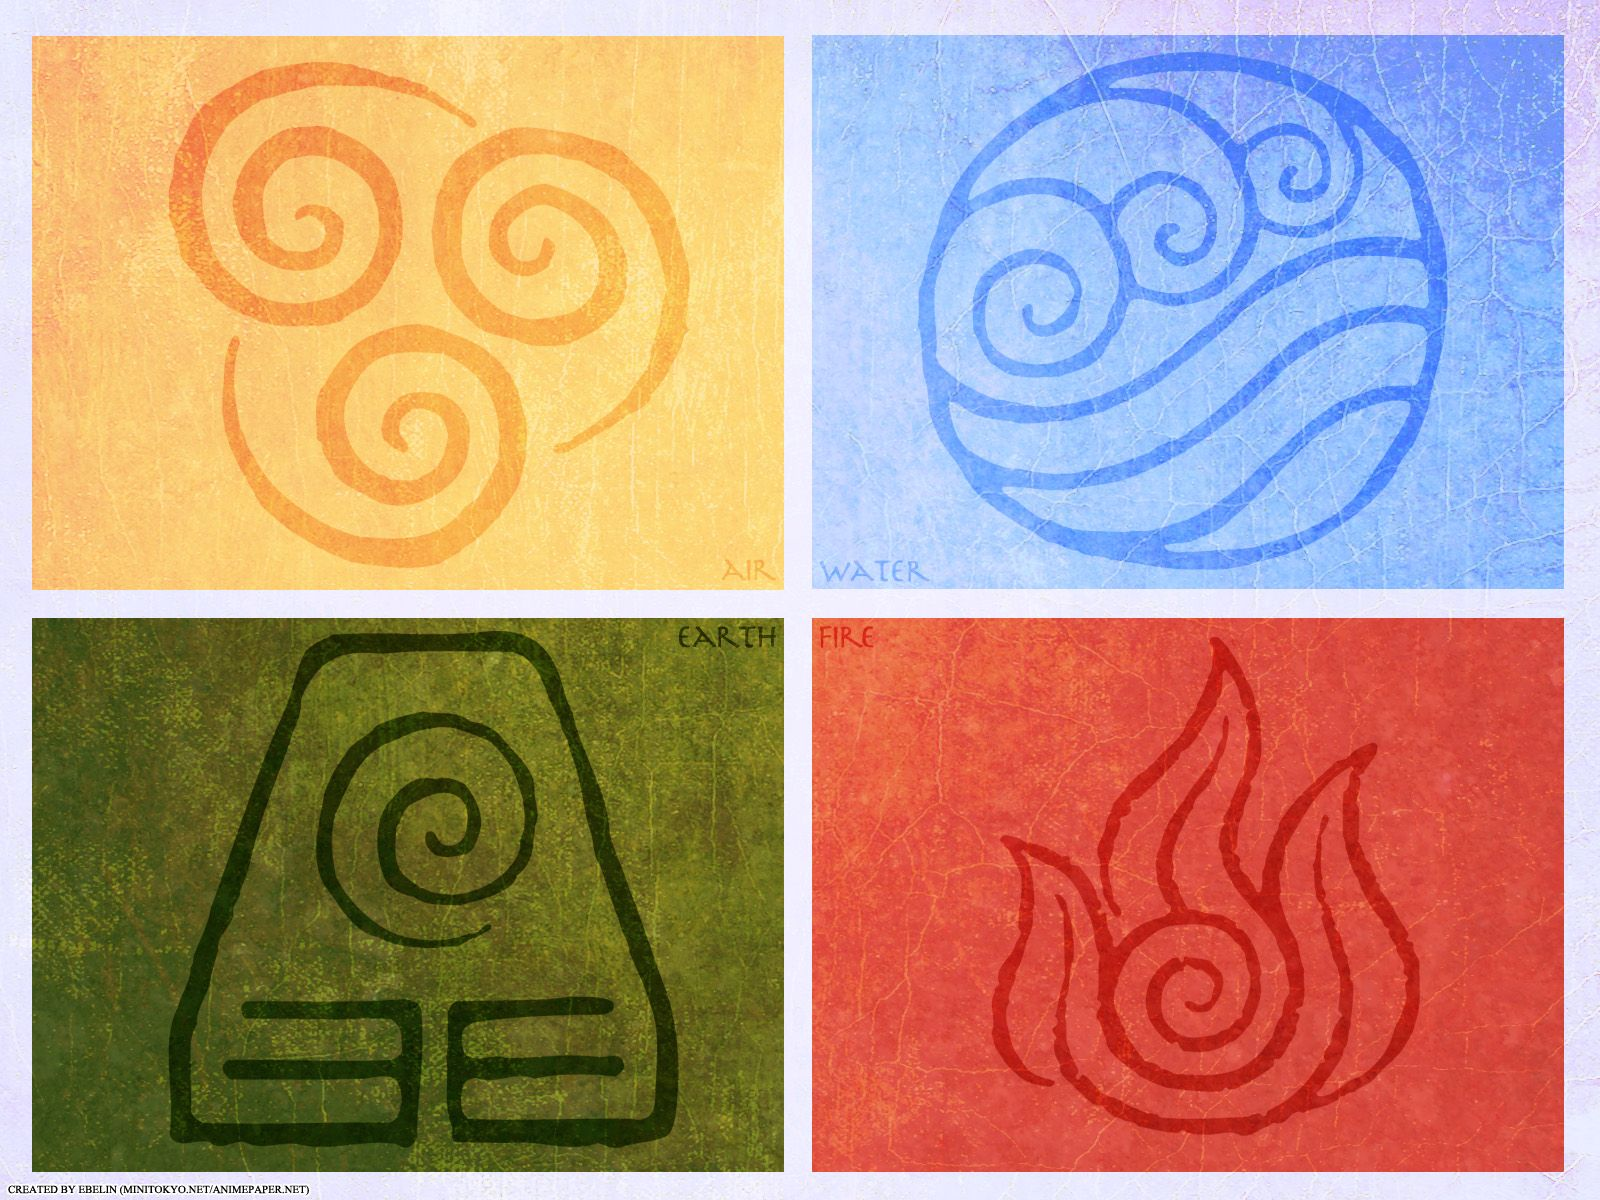 40 avatar the last airbender wallpaper for download symbols avatar the last airbender symbols air water earth fire 4 elements biocorpaavc Image collections